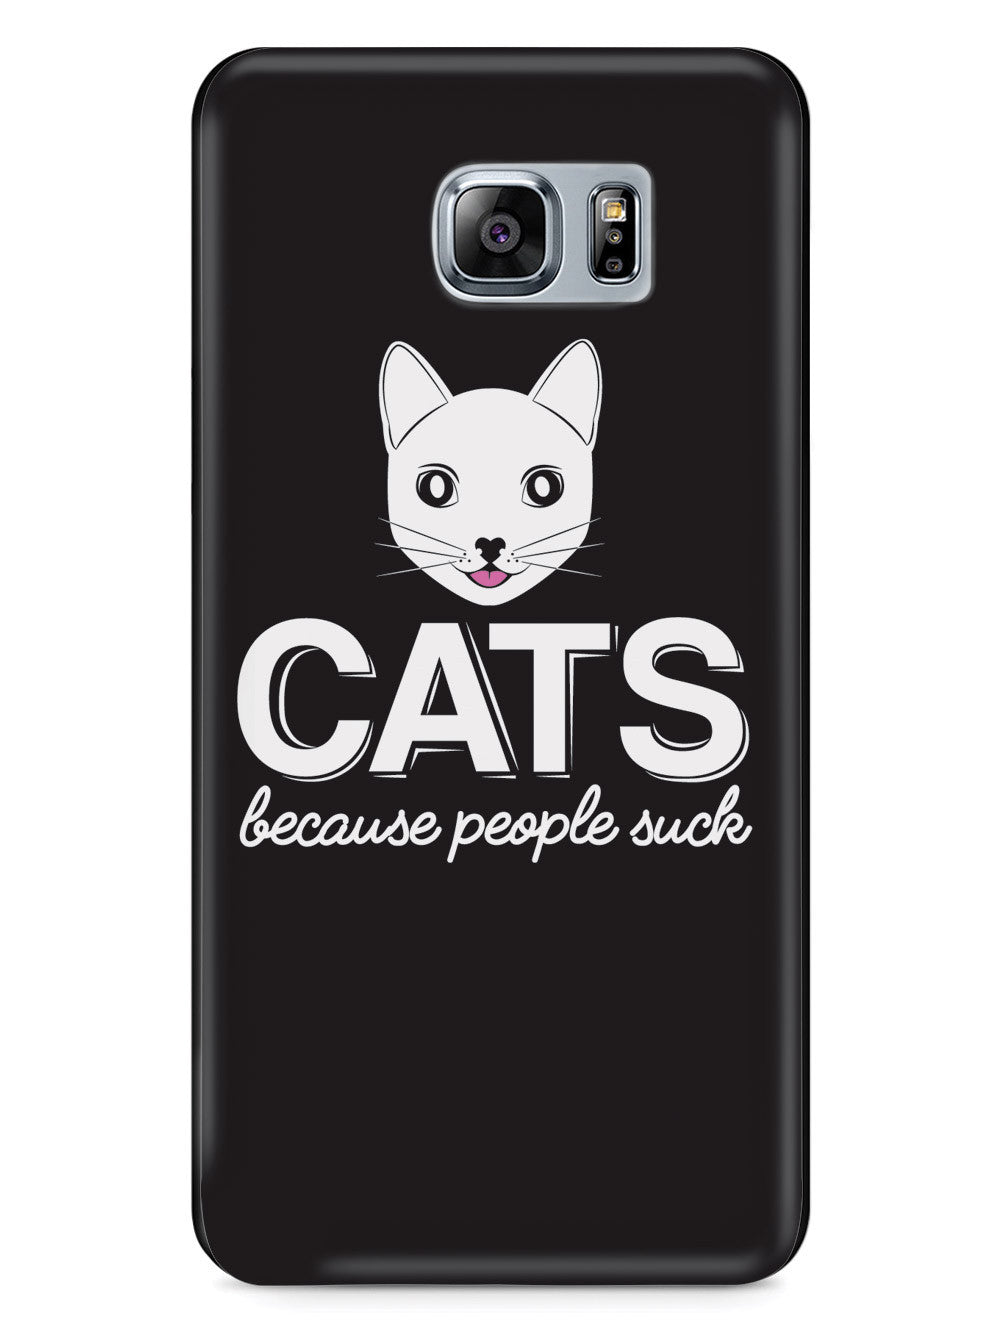 CATS - Because People Suck Case